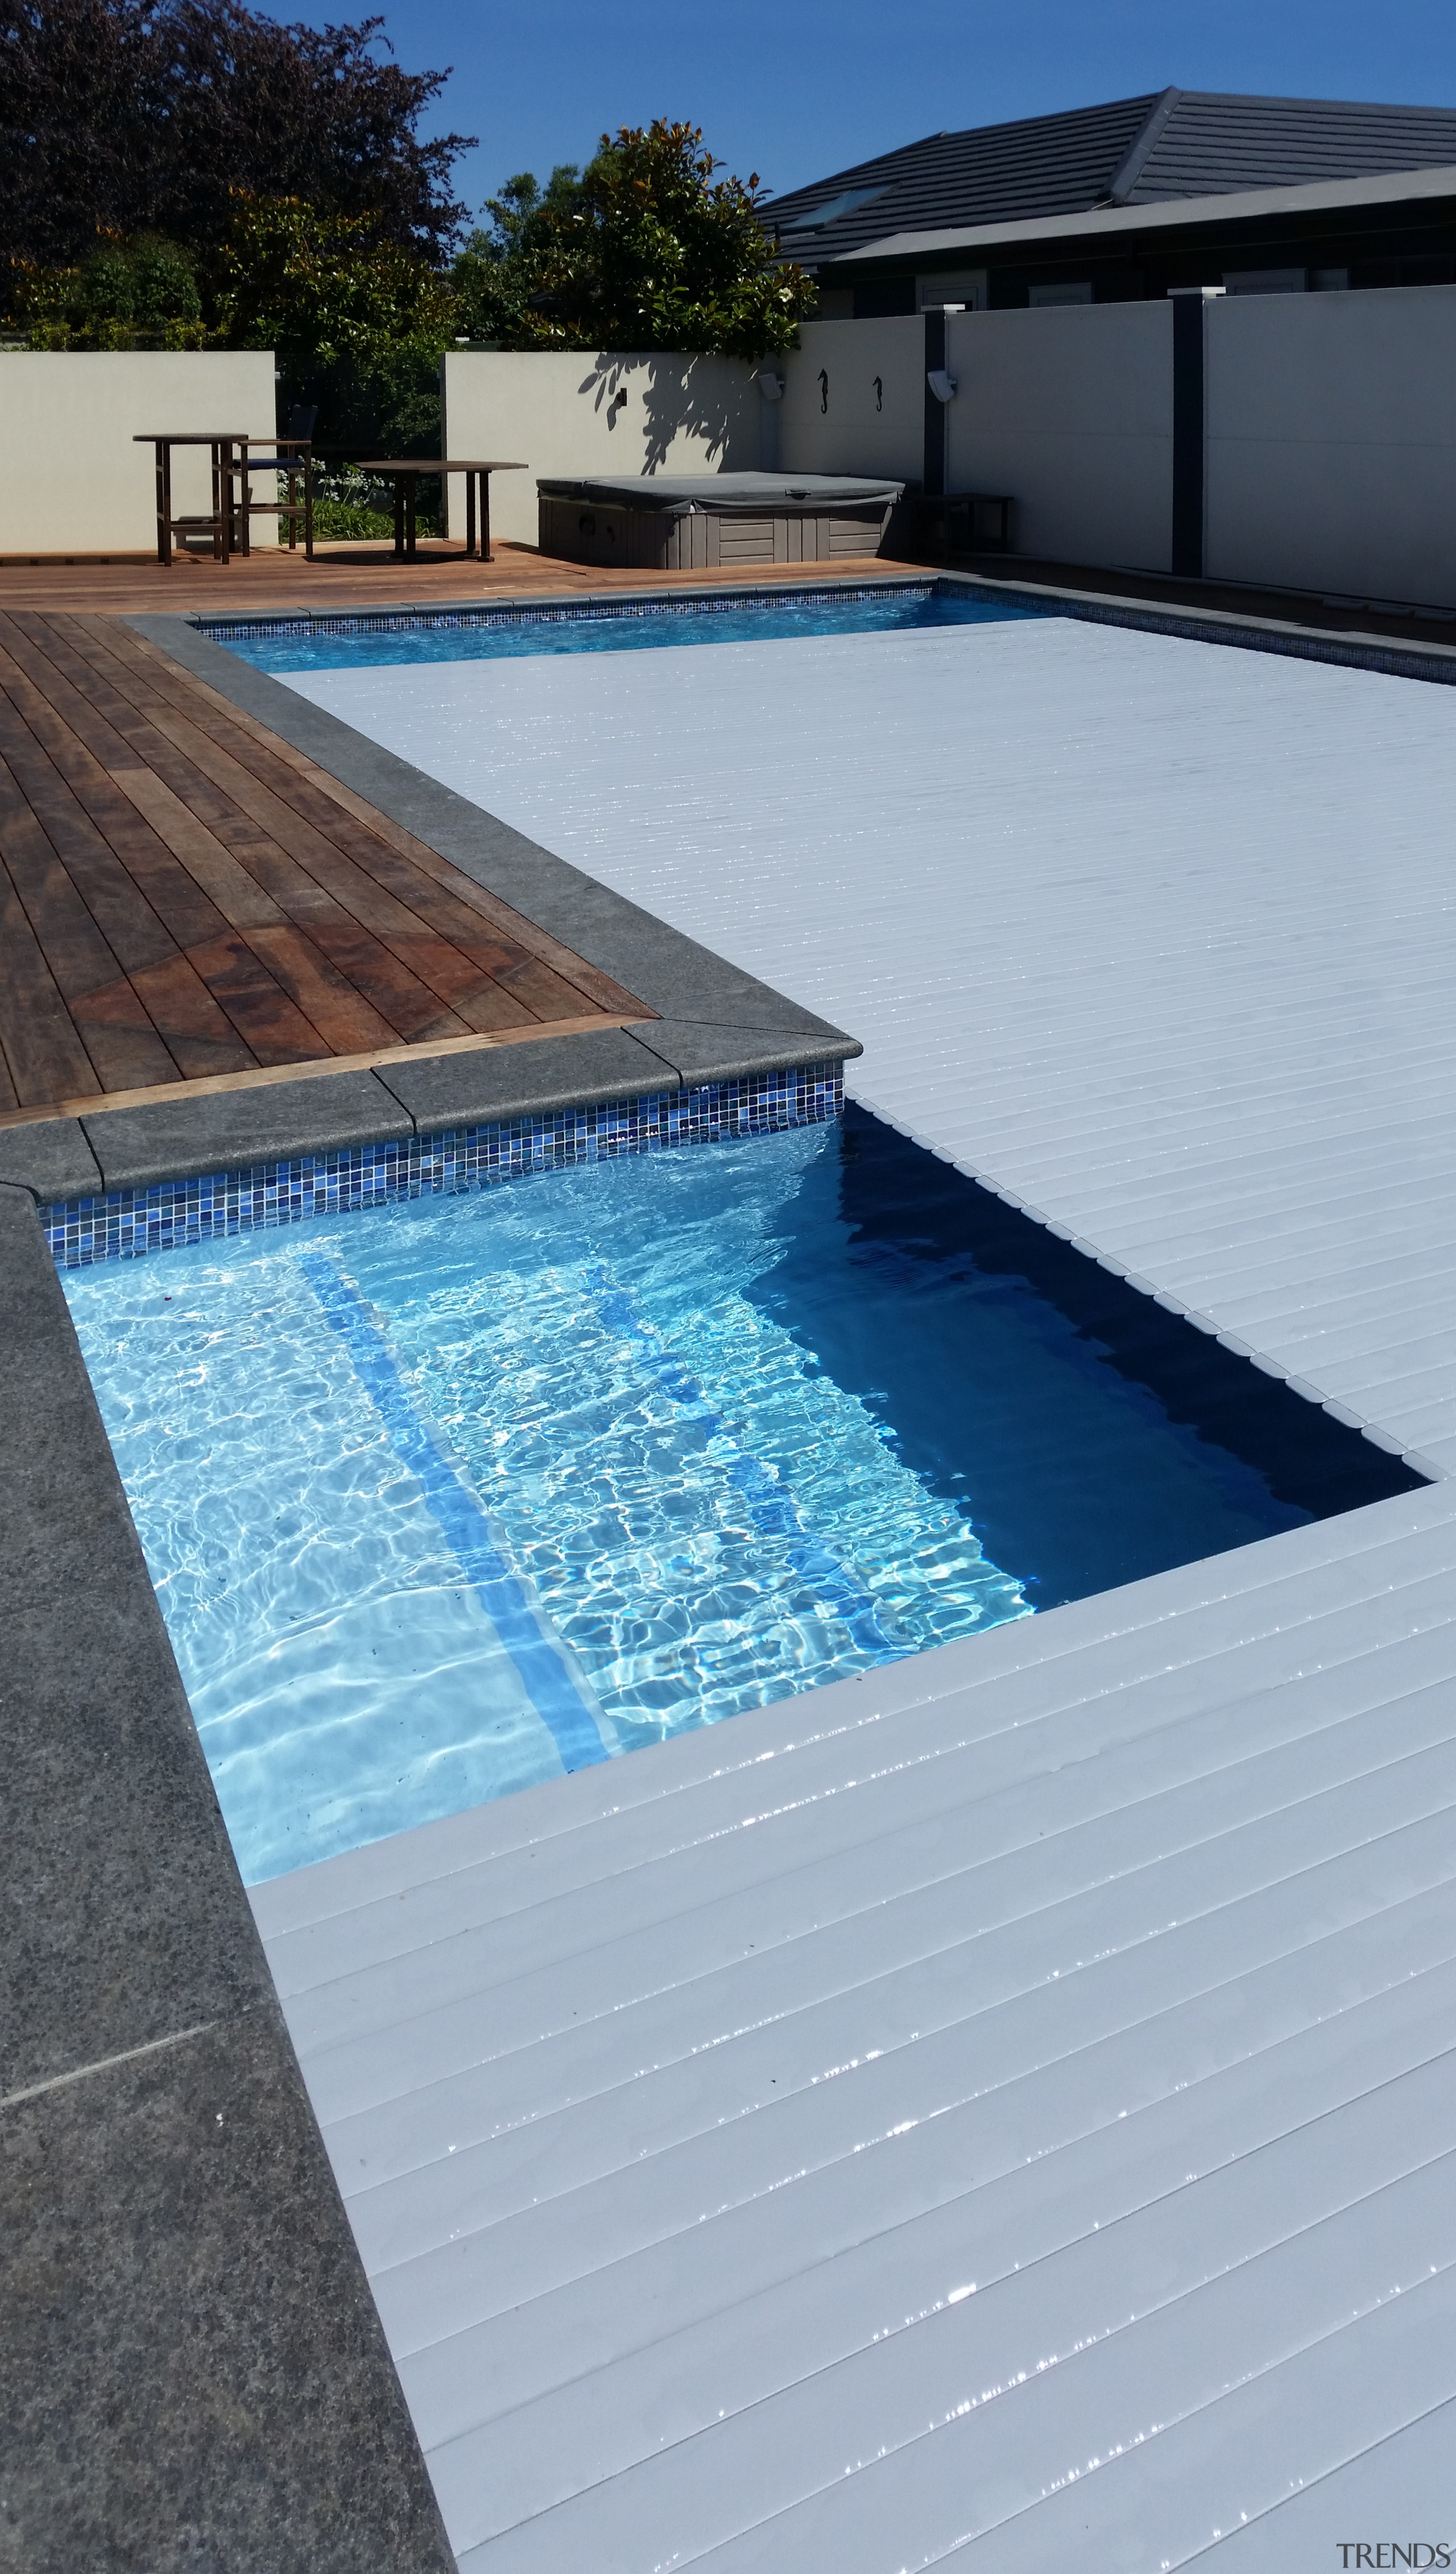 Covers 4 Pools has many automated options with composite material, leisure, swimming pool, water, covers 4 pools,  automated,  pool cover, coverstar, roll out cover